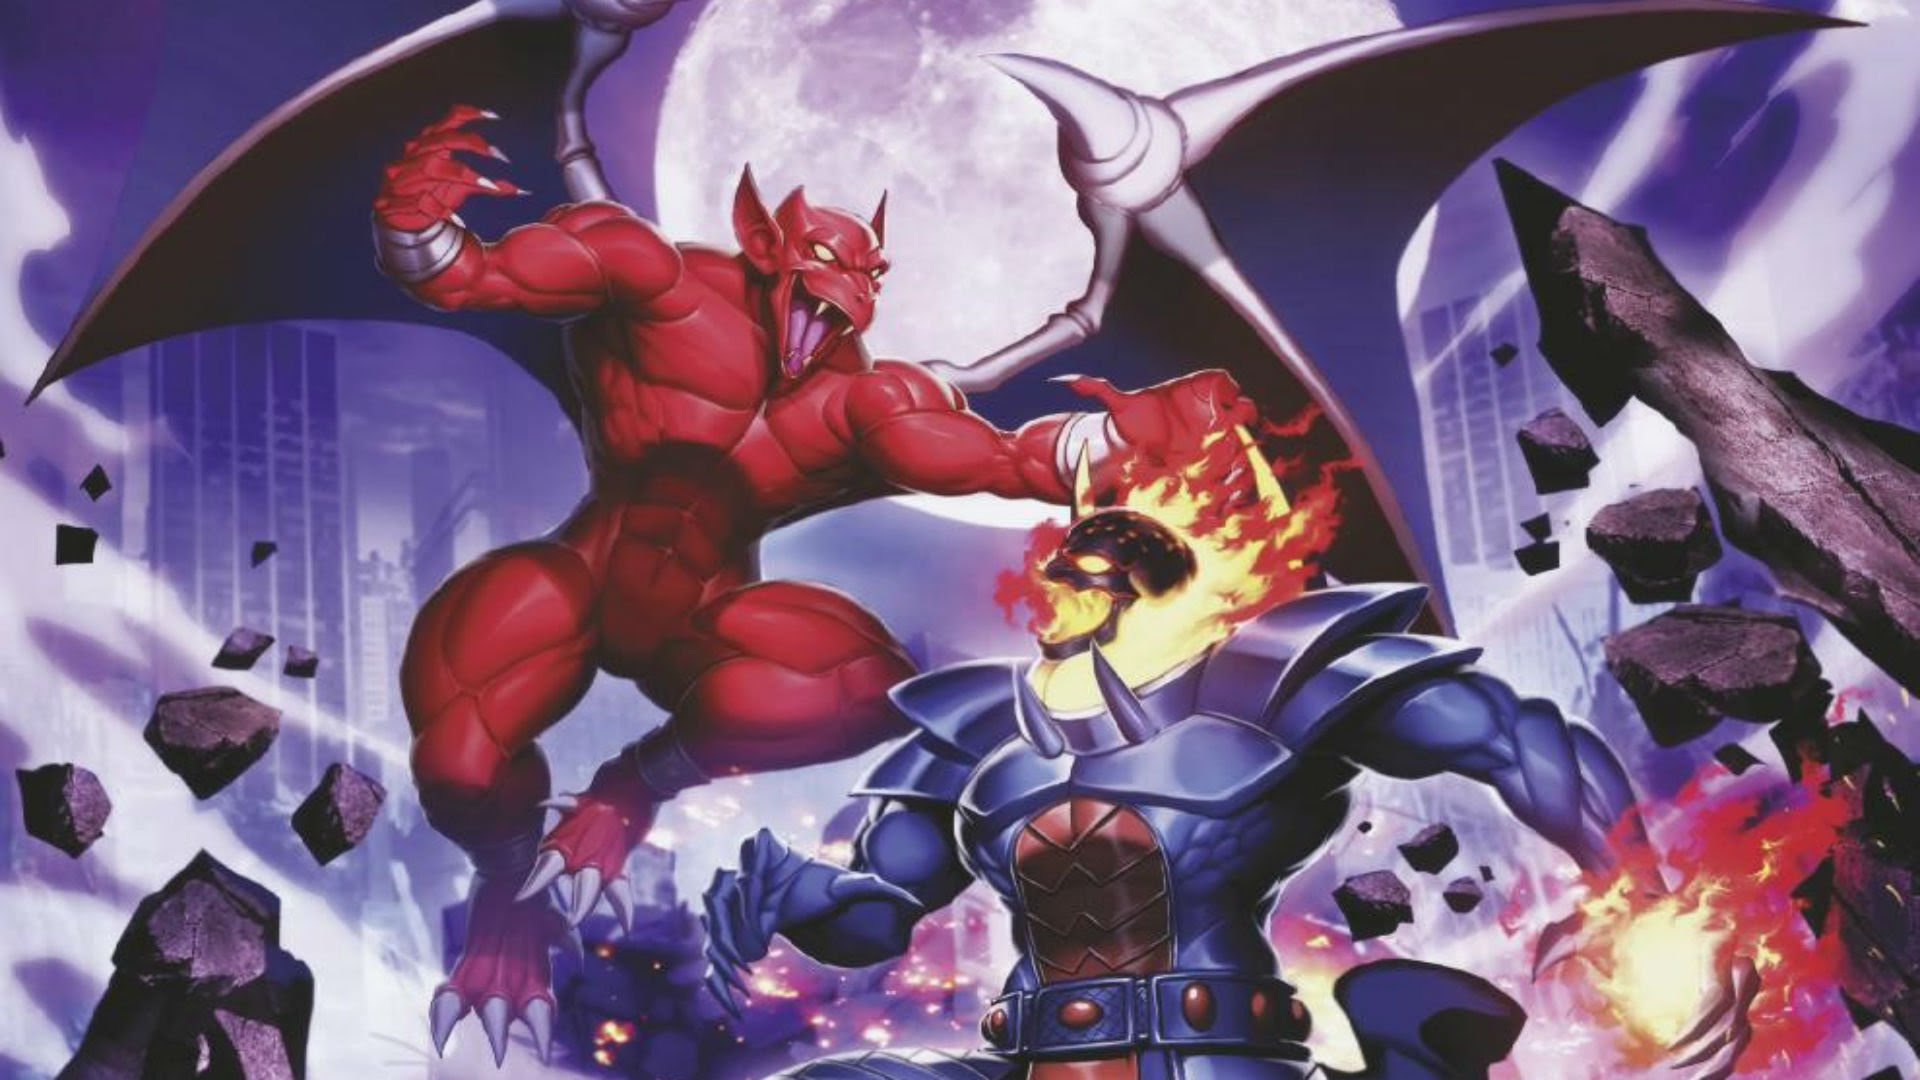 Dormammu and Firebrand returning for Marvel vs. Capcom: Infinite screenshot